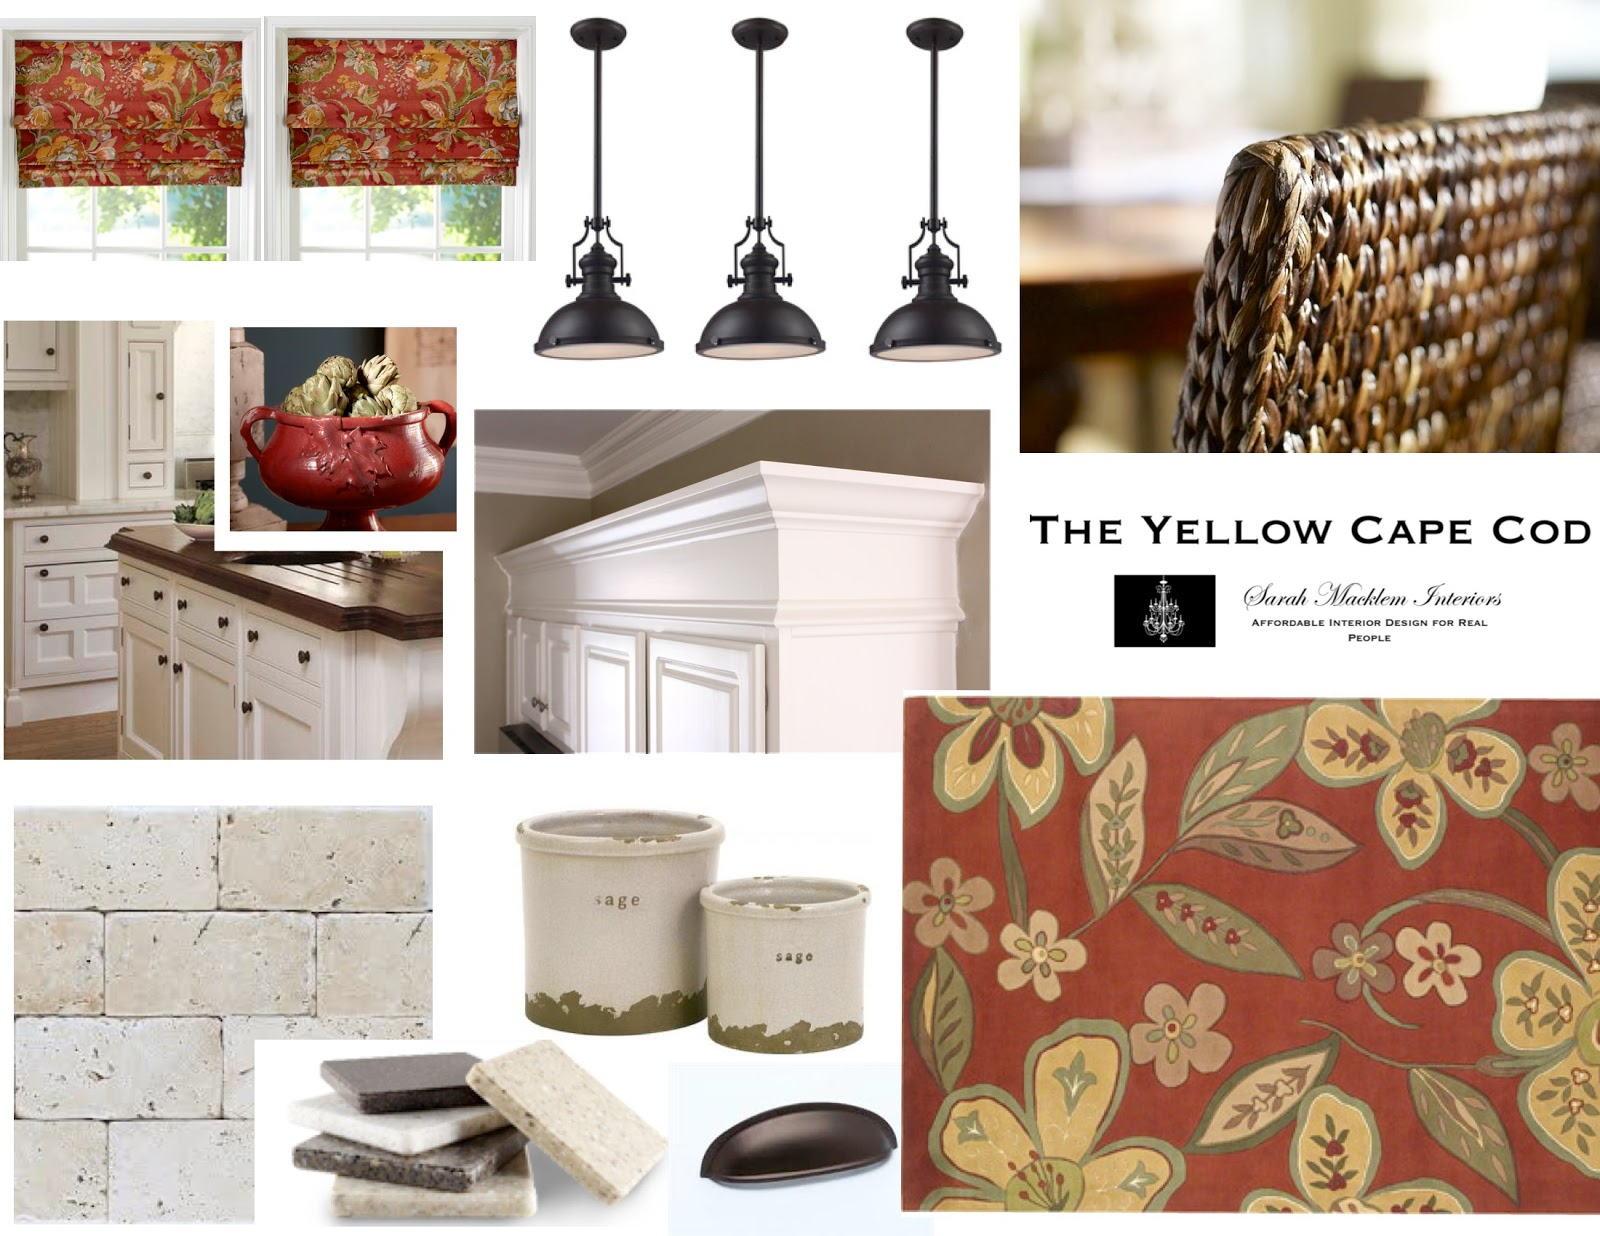 The Yellow Cape Cod: Mixing Materials in The Kitchen